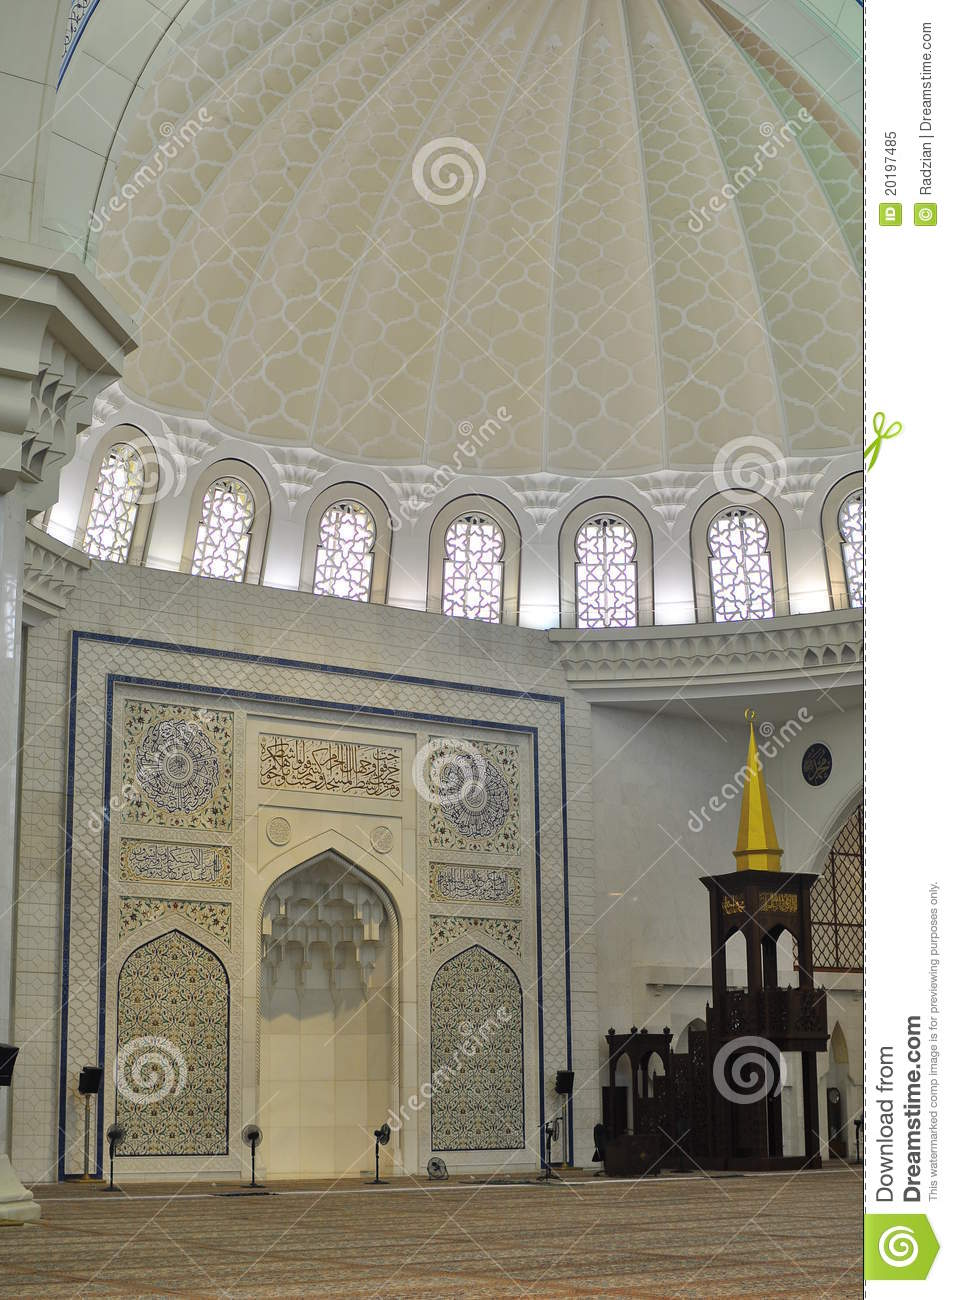 Modern Islamic Interior Design On Behance: The Beautiful Interior Design Of Wilayah Mosque Royalty